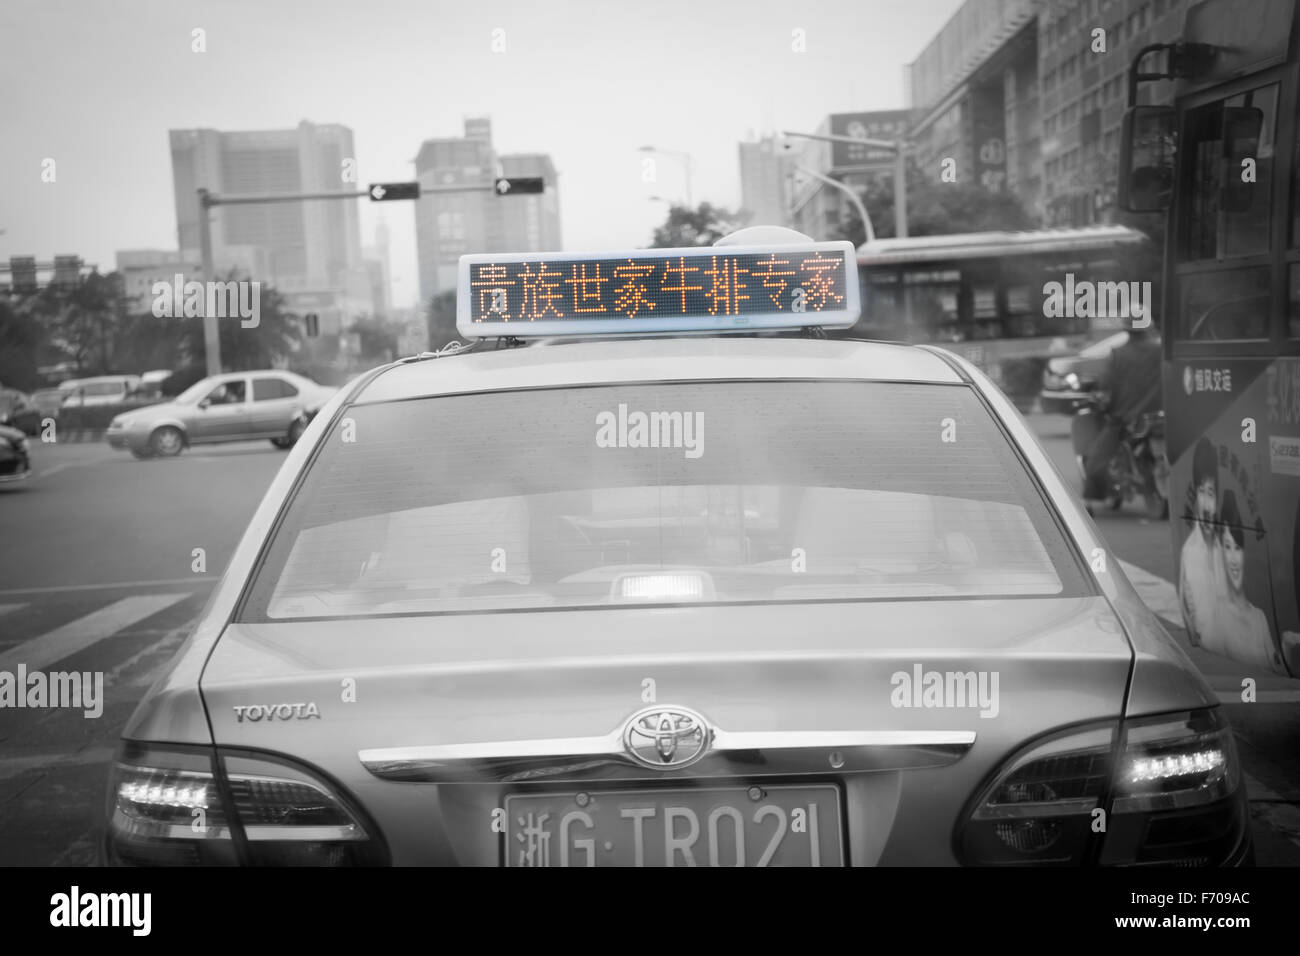 A taxi in Jinhua City, China - Stock Image